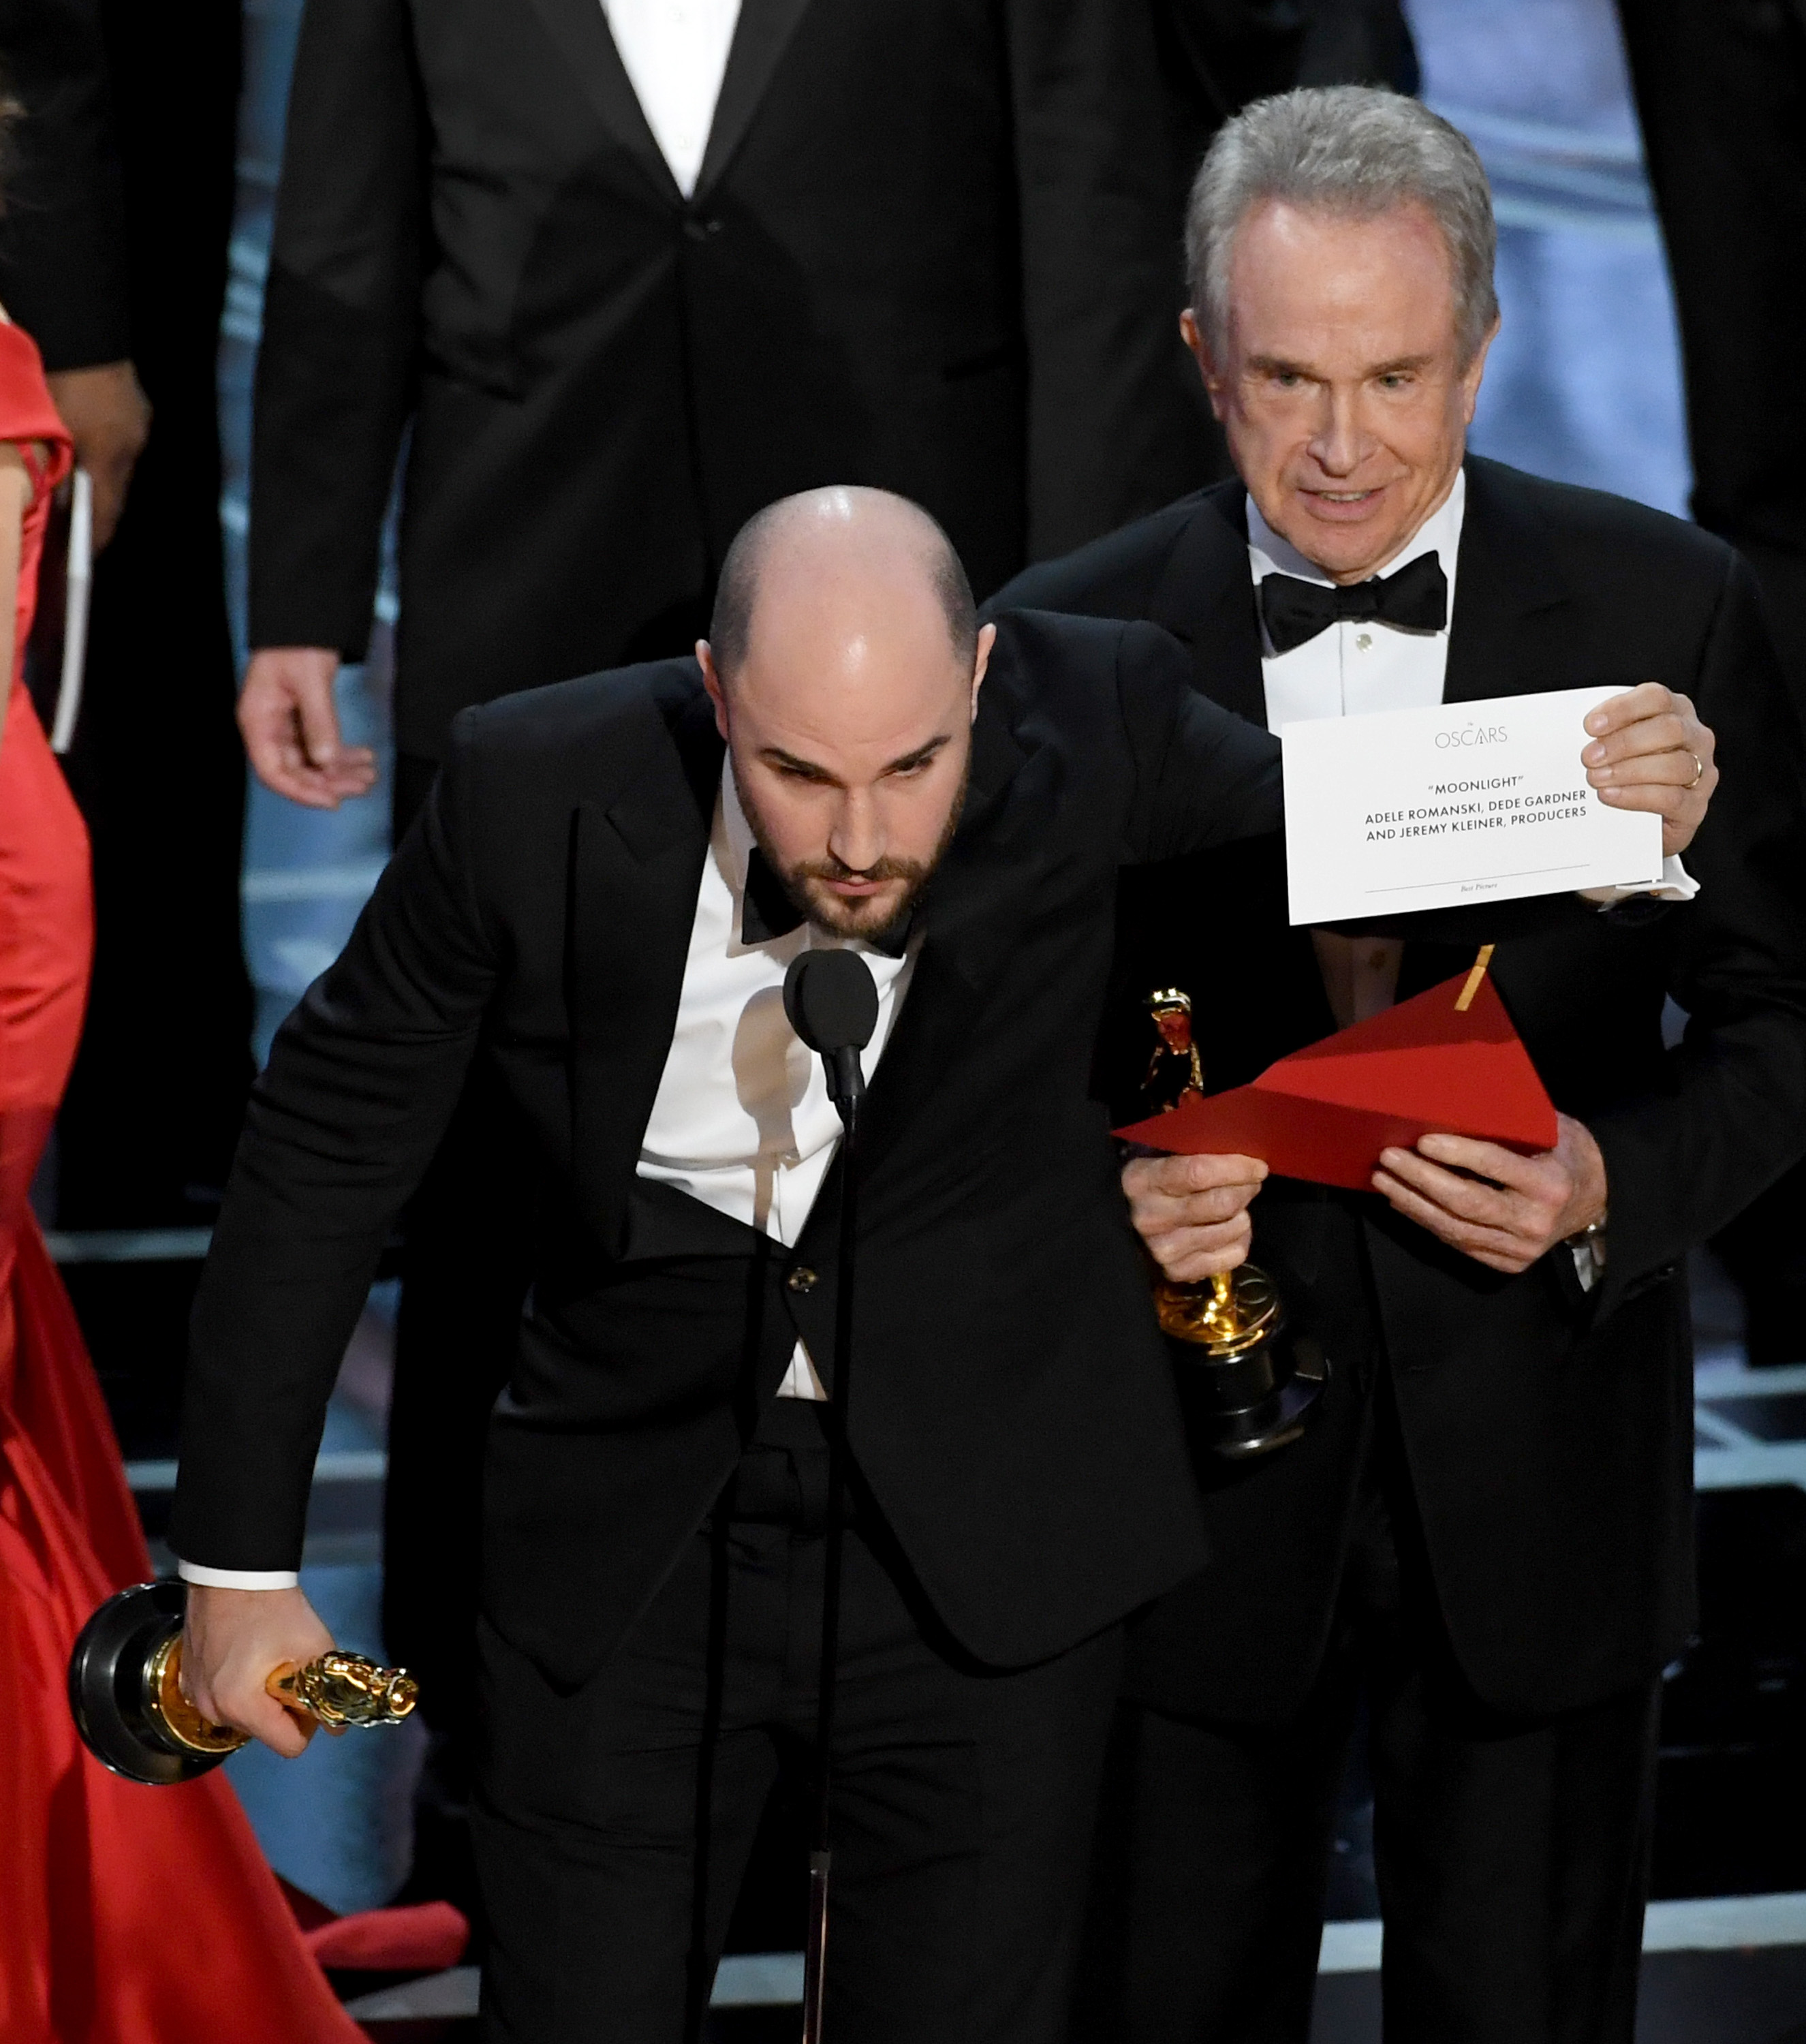 HOLLYWOOD, CA - FEBRUARY 26: 'La La Land' producer Jordan Horowitz (L) holds up the winner card reading actual Best Picture winner 'Moonlight' after a presentation error with actor Warren Beatty onstage during the 89th Annual Academy Awards at Hollywood & Highland Center on February 26, 2017 in Hollywood, California. Kevin Winter/Getty Images/AFP